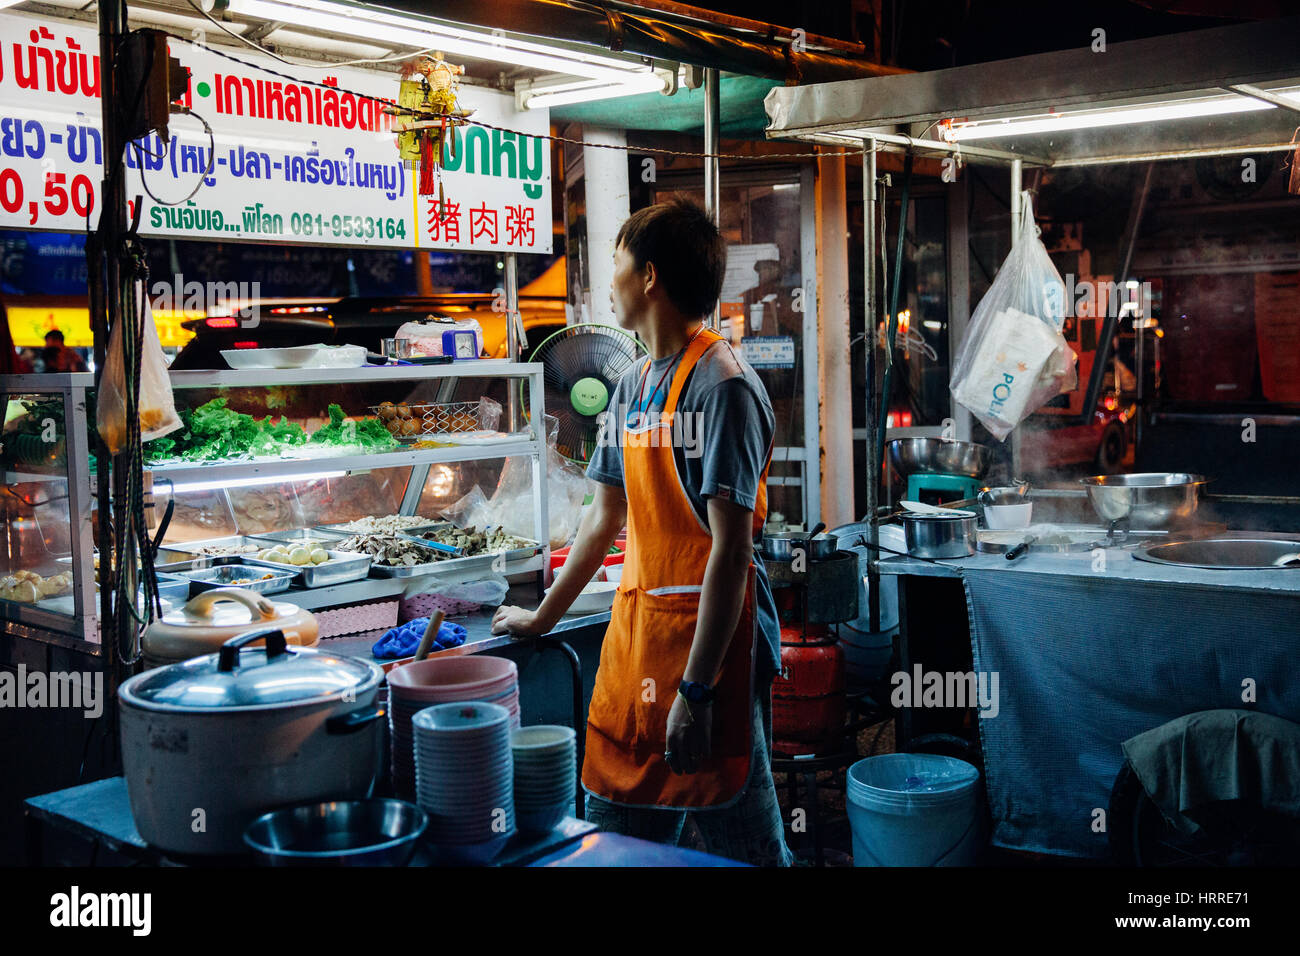 Chiang Mai, Thailand - August 27, 2016:  Food vendor waits for customers at the Saturday Night Market on August - Stock Image